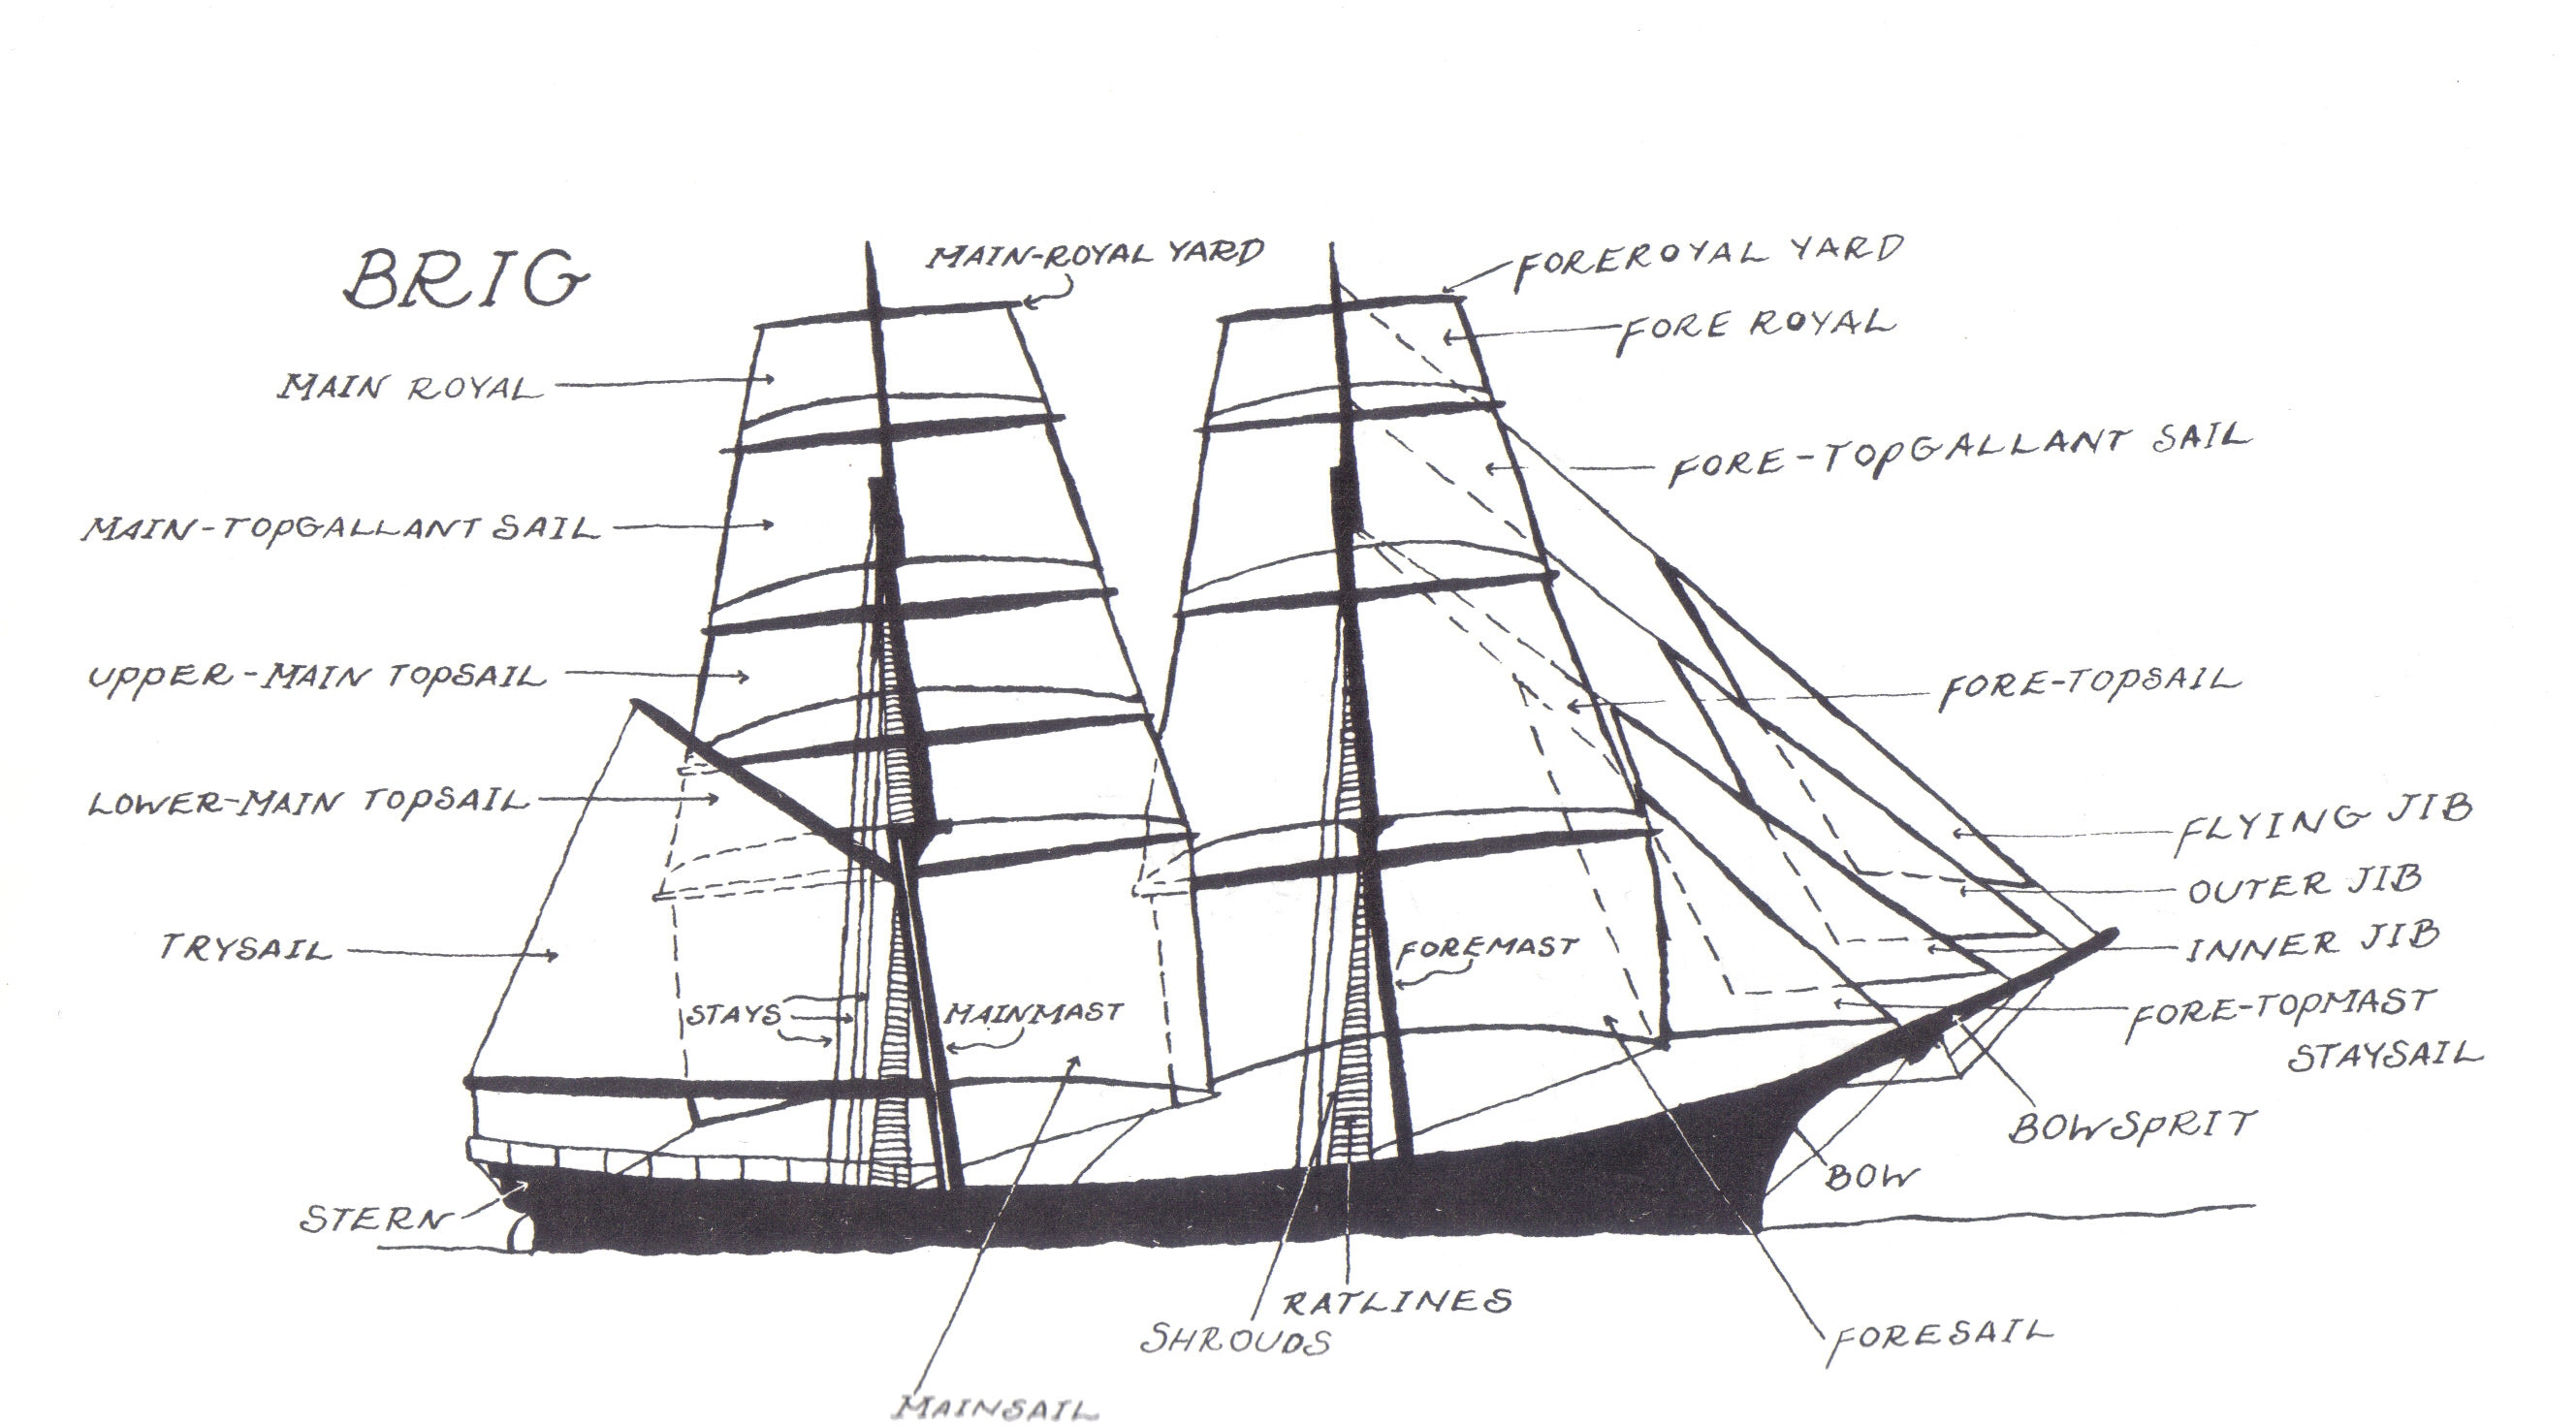 Pirate Ship Diagram Basic - Product Wiring Diagrams •